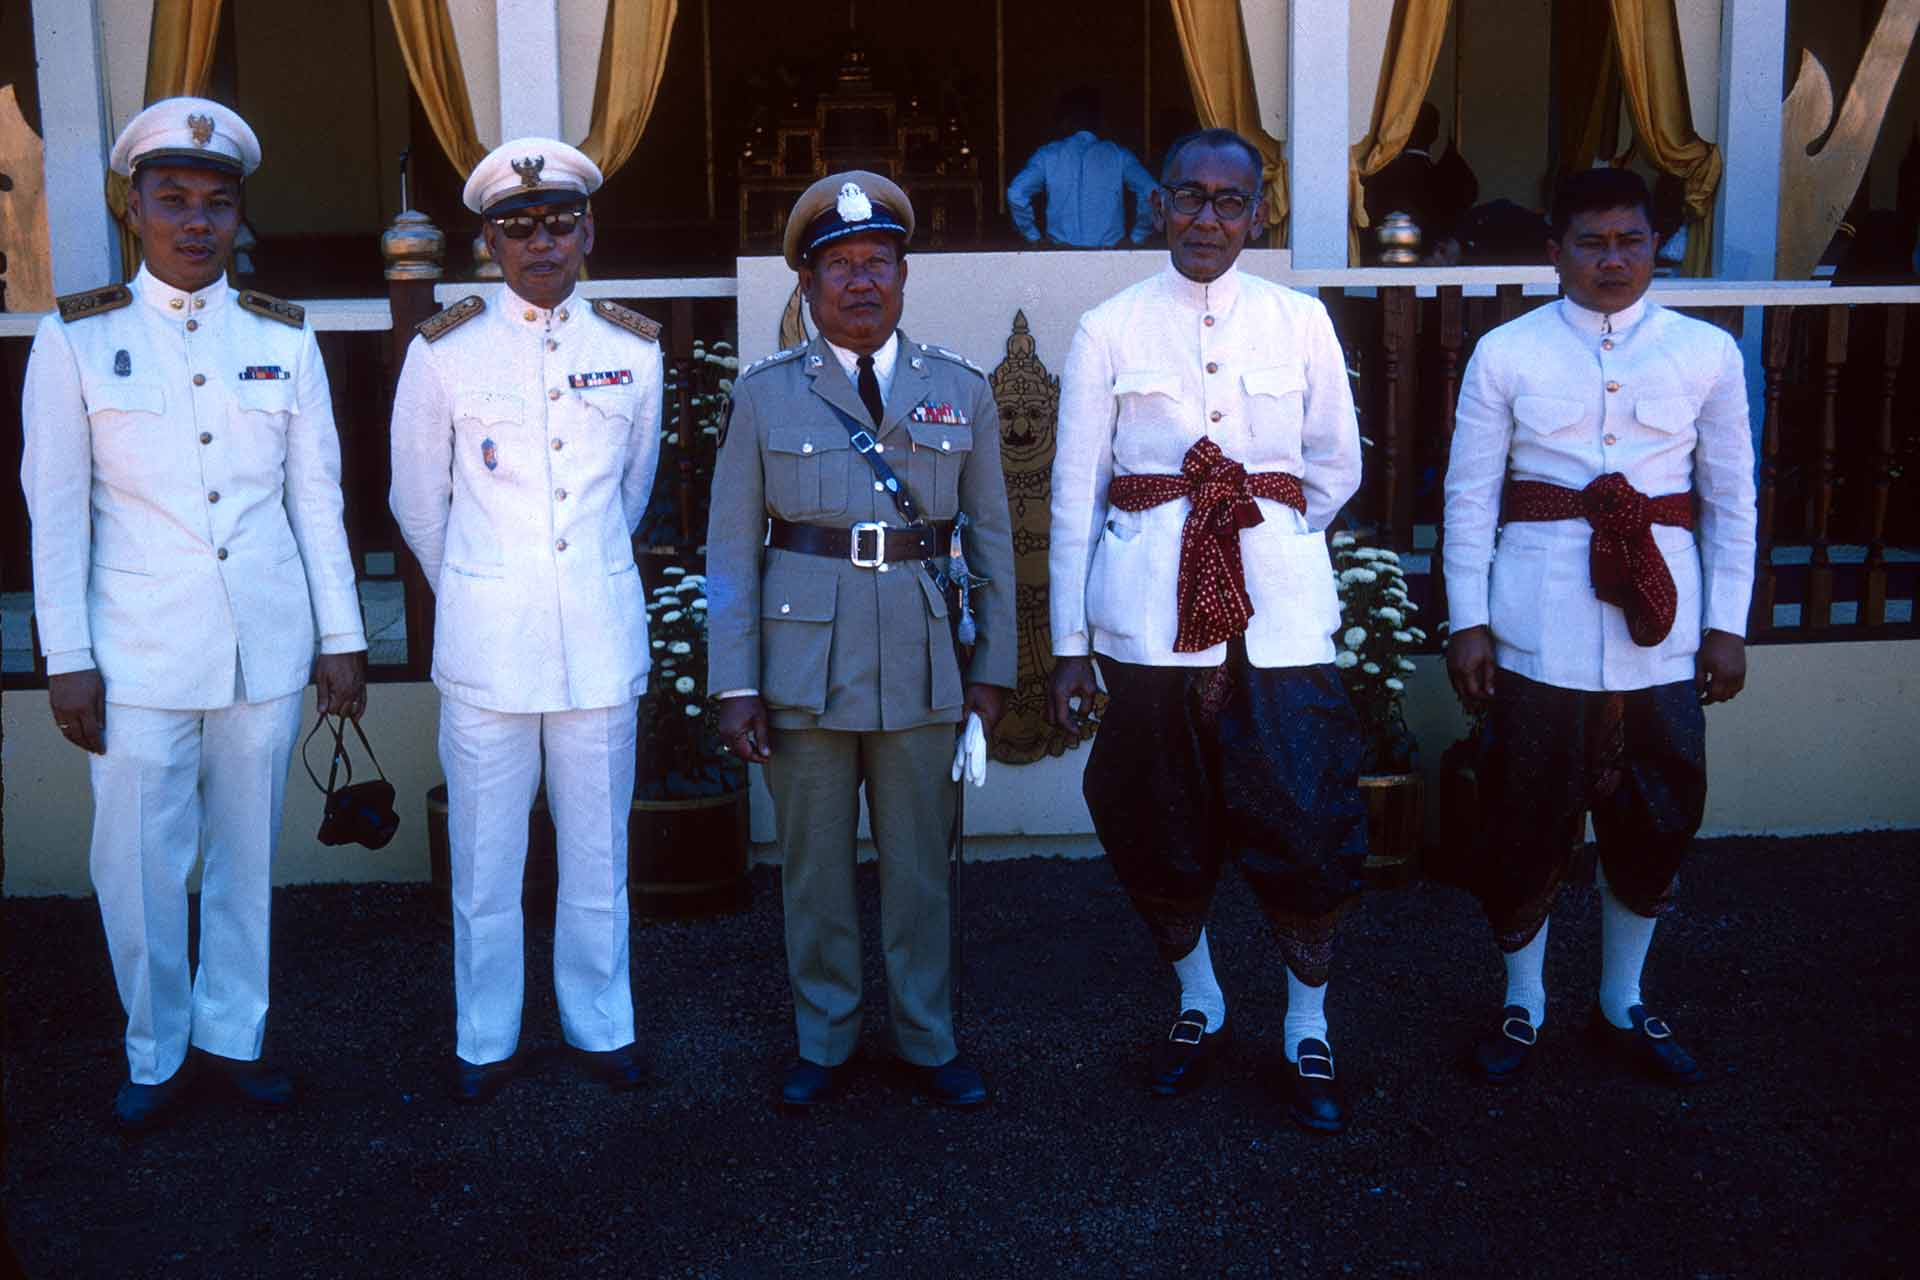 5 men posing. 3 in military uniforms. 2 in white shirts and billowy pants.